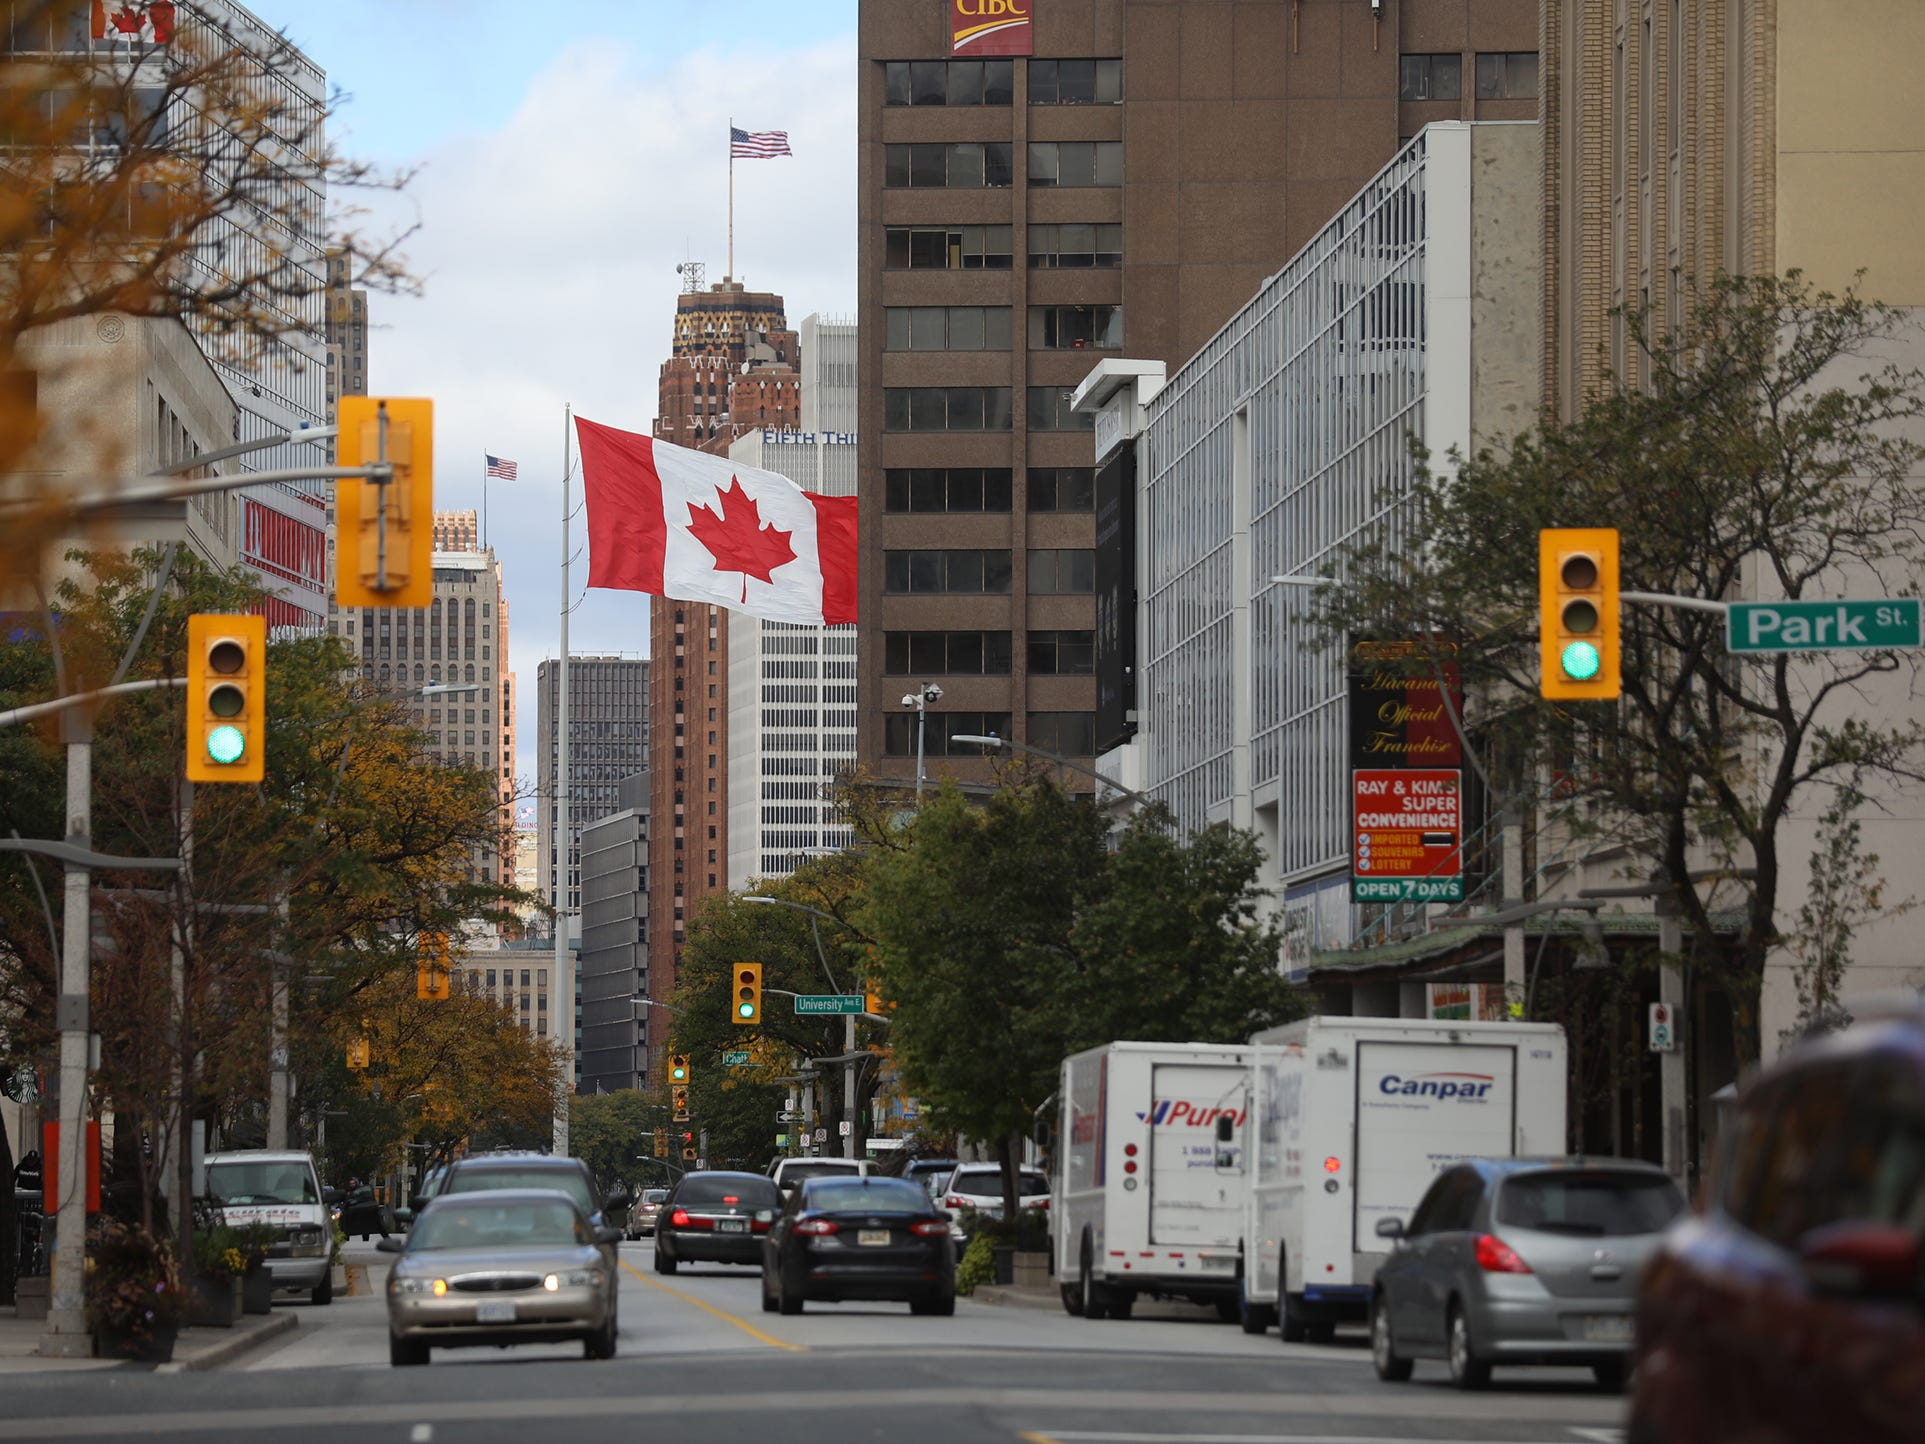 Ouelette Avenue in downtown Windsor, Ontario, Canada.